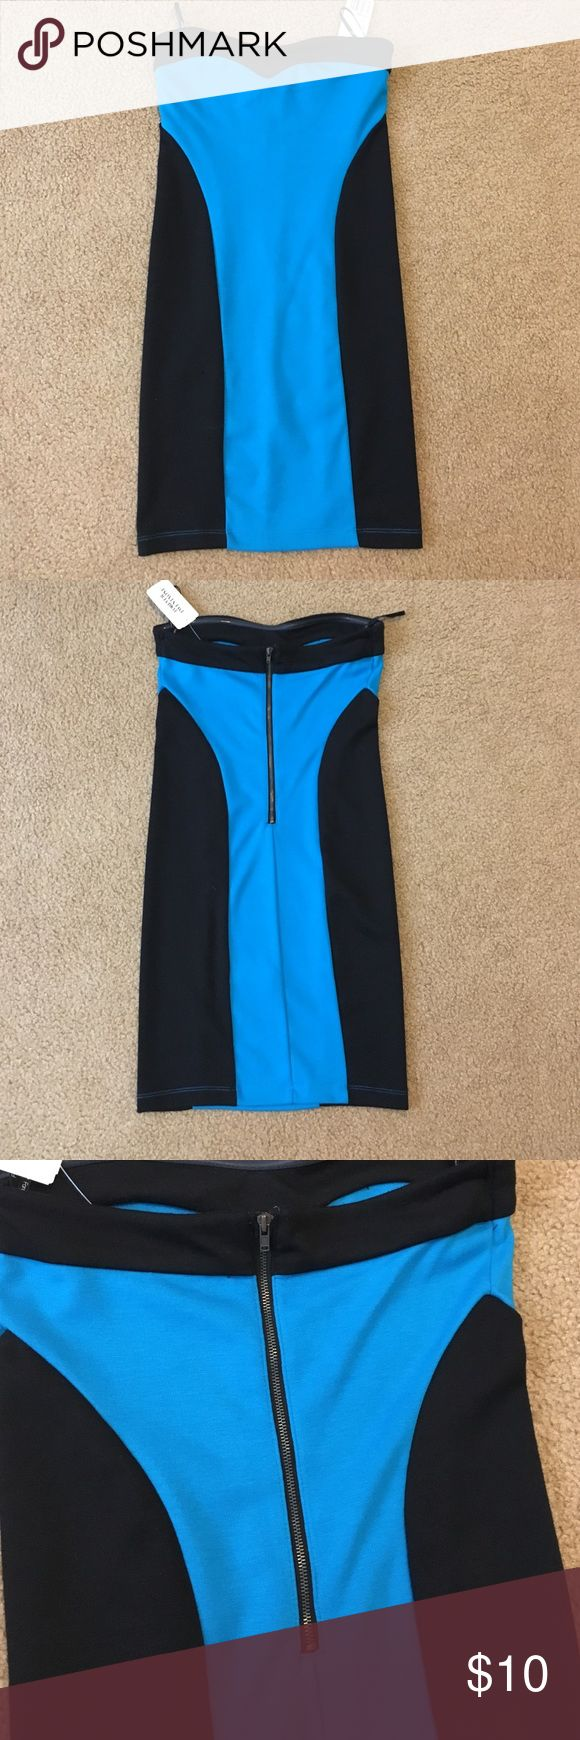 Forever 21 night-out dress (small) Black/blue strapless dress from Forever 21. Perfect for parties and girls-night-outs! Size small. New with tags. Forever 21 Dresses Strapless